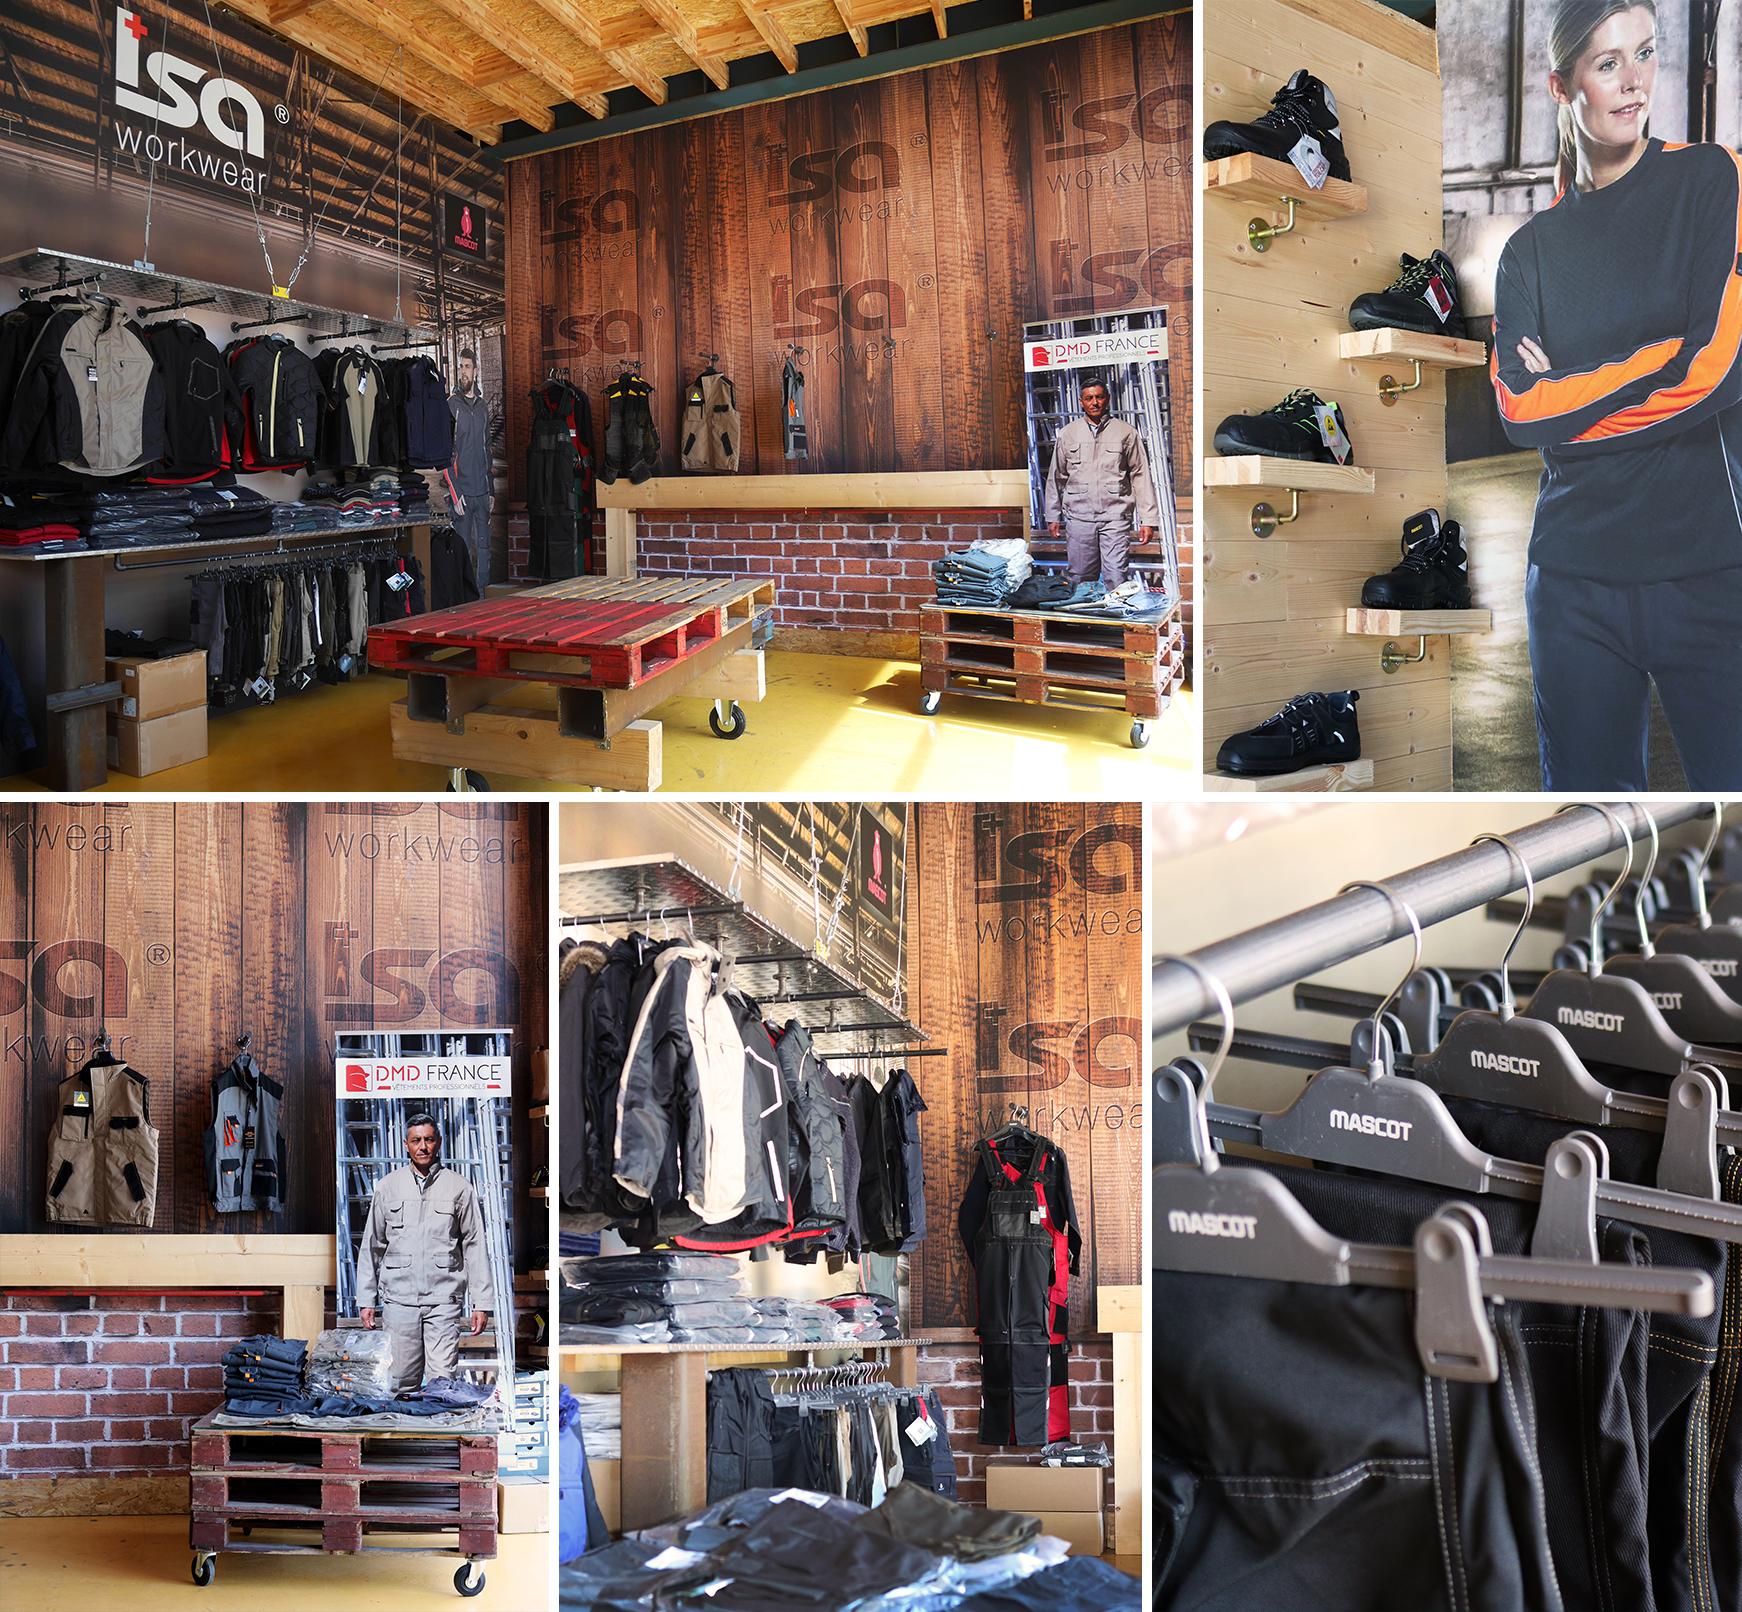 ISA WORKWEAR magasin de vêtements professionnels vente direct